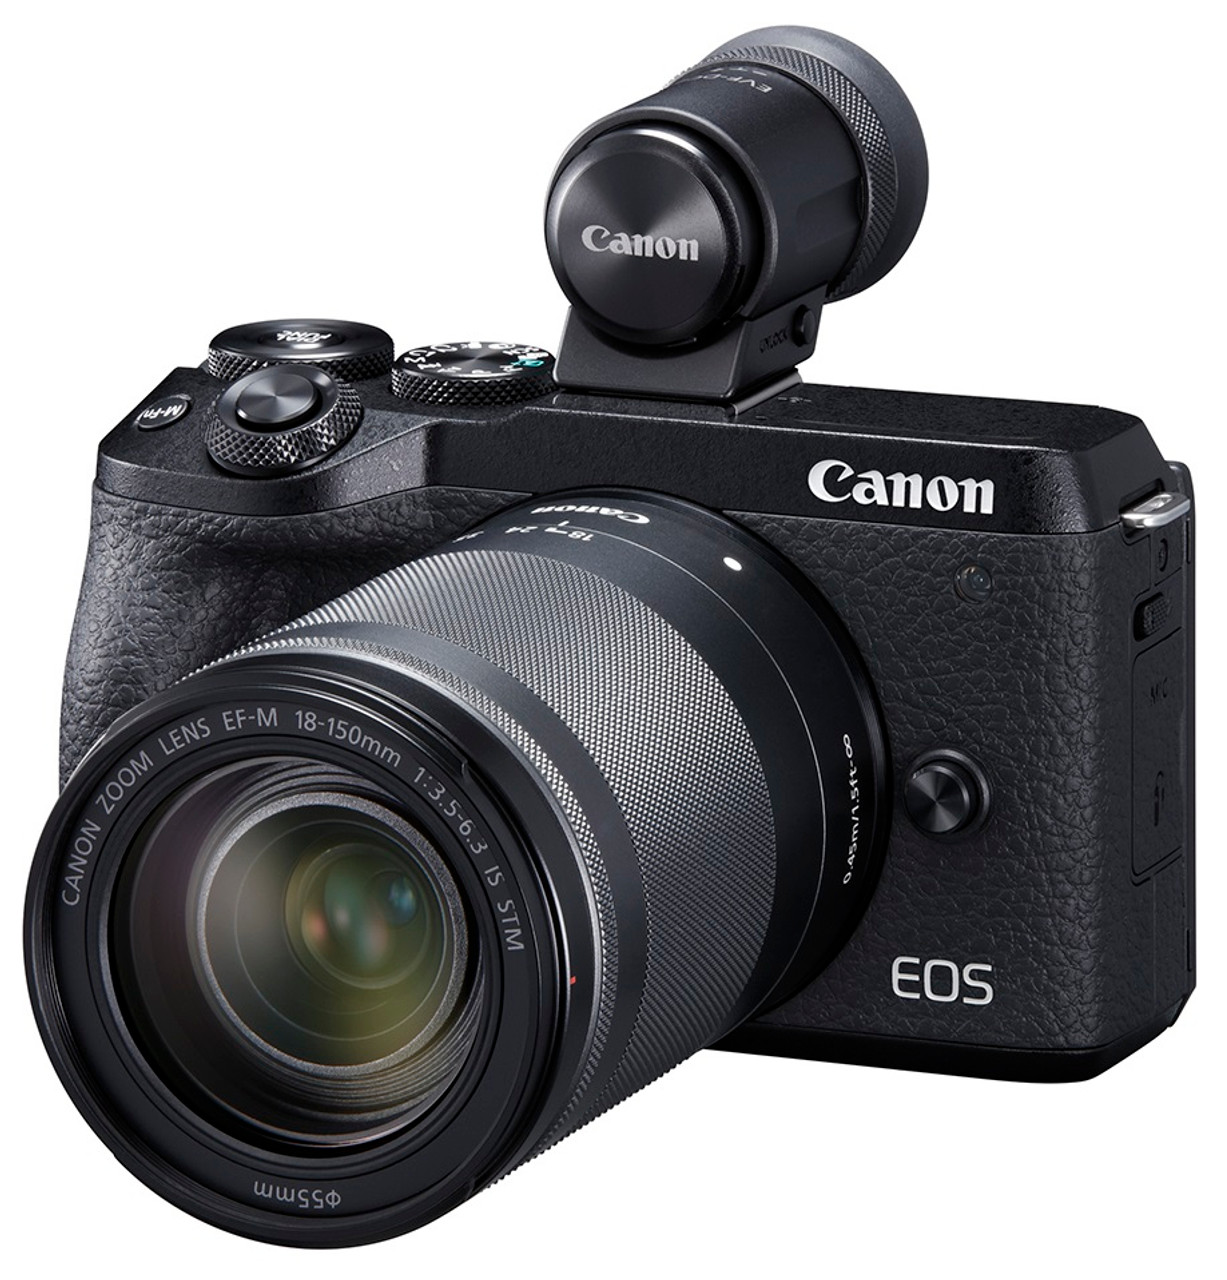 Canon EOS M6 Mark II Interchangeable Lens Camera with EF-M 18-150mm IS STM Lens and EVF-DC2